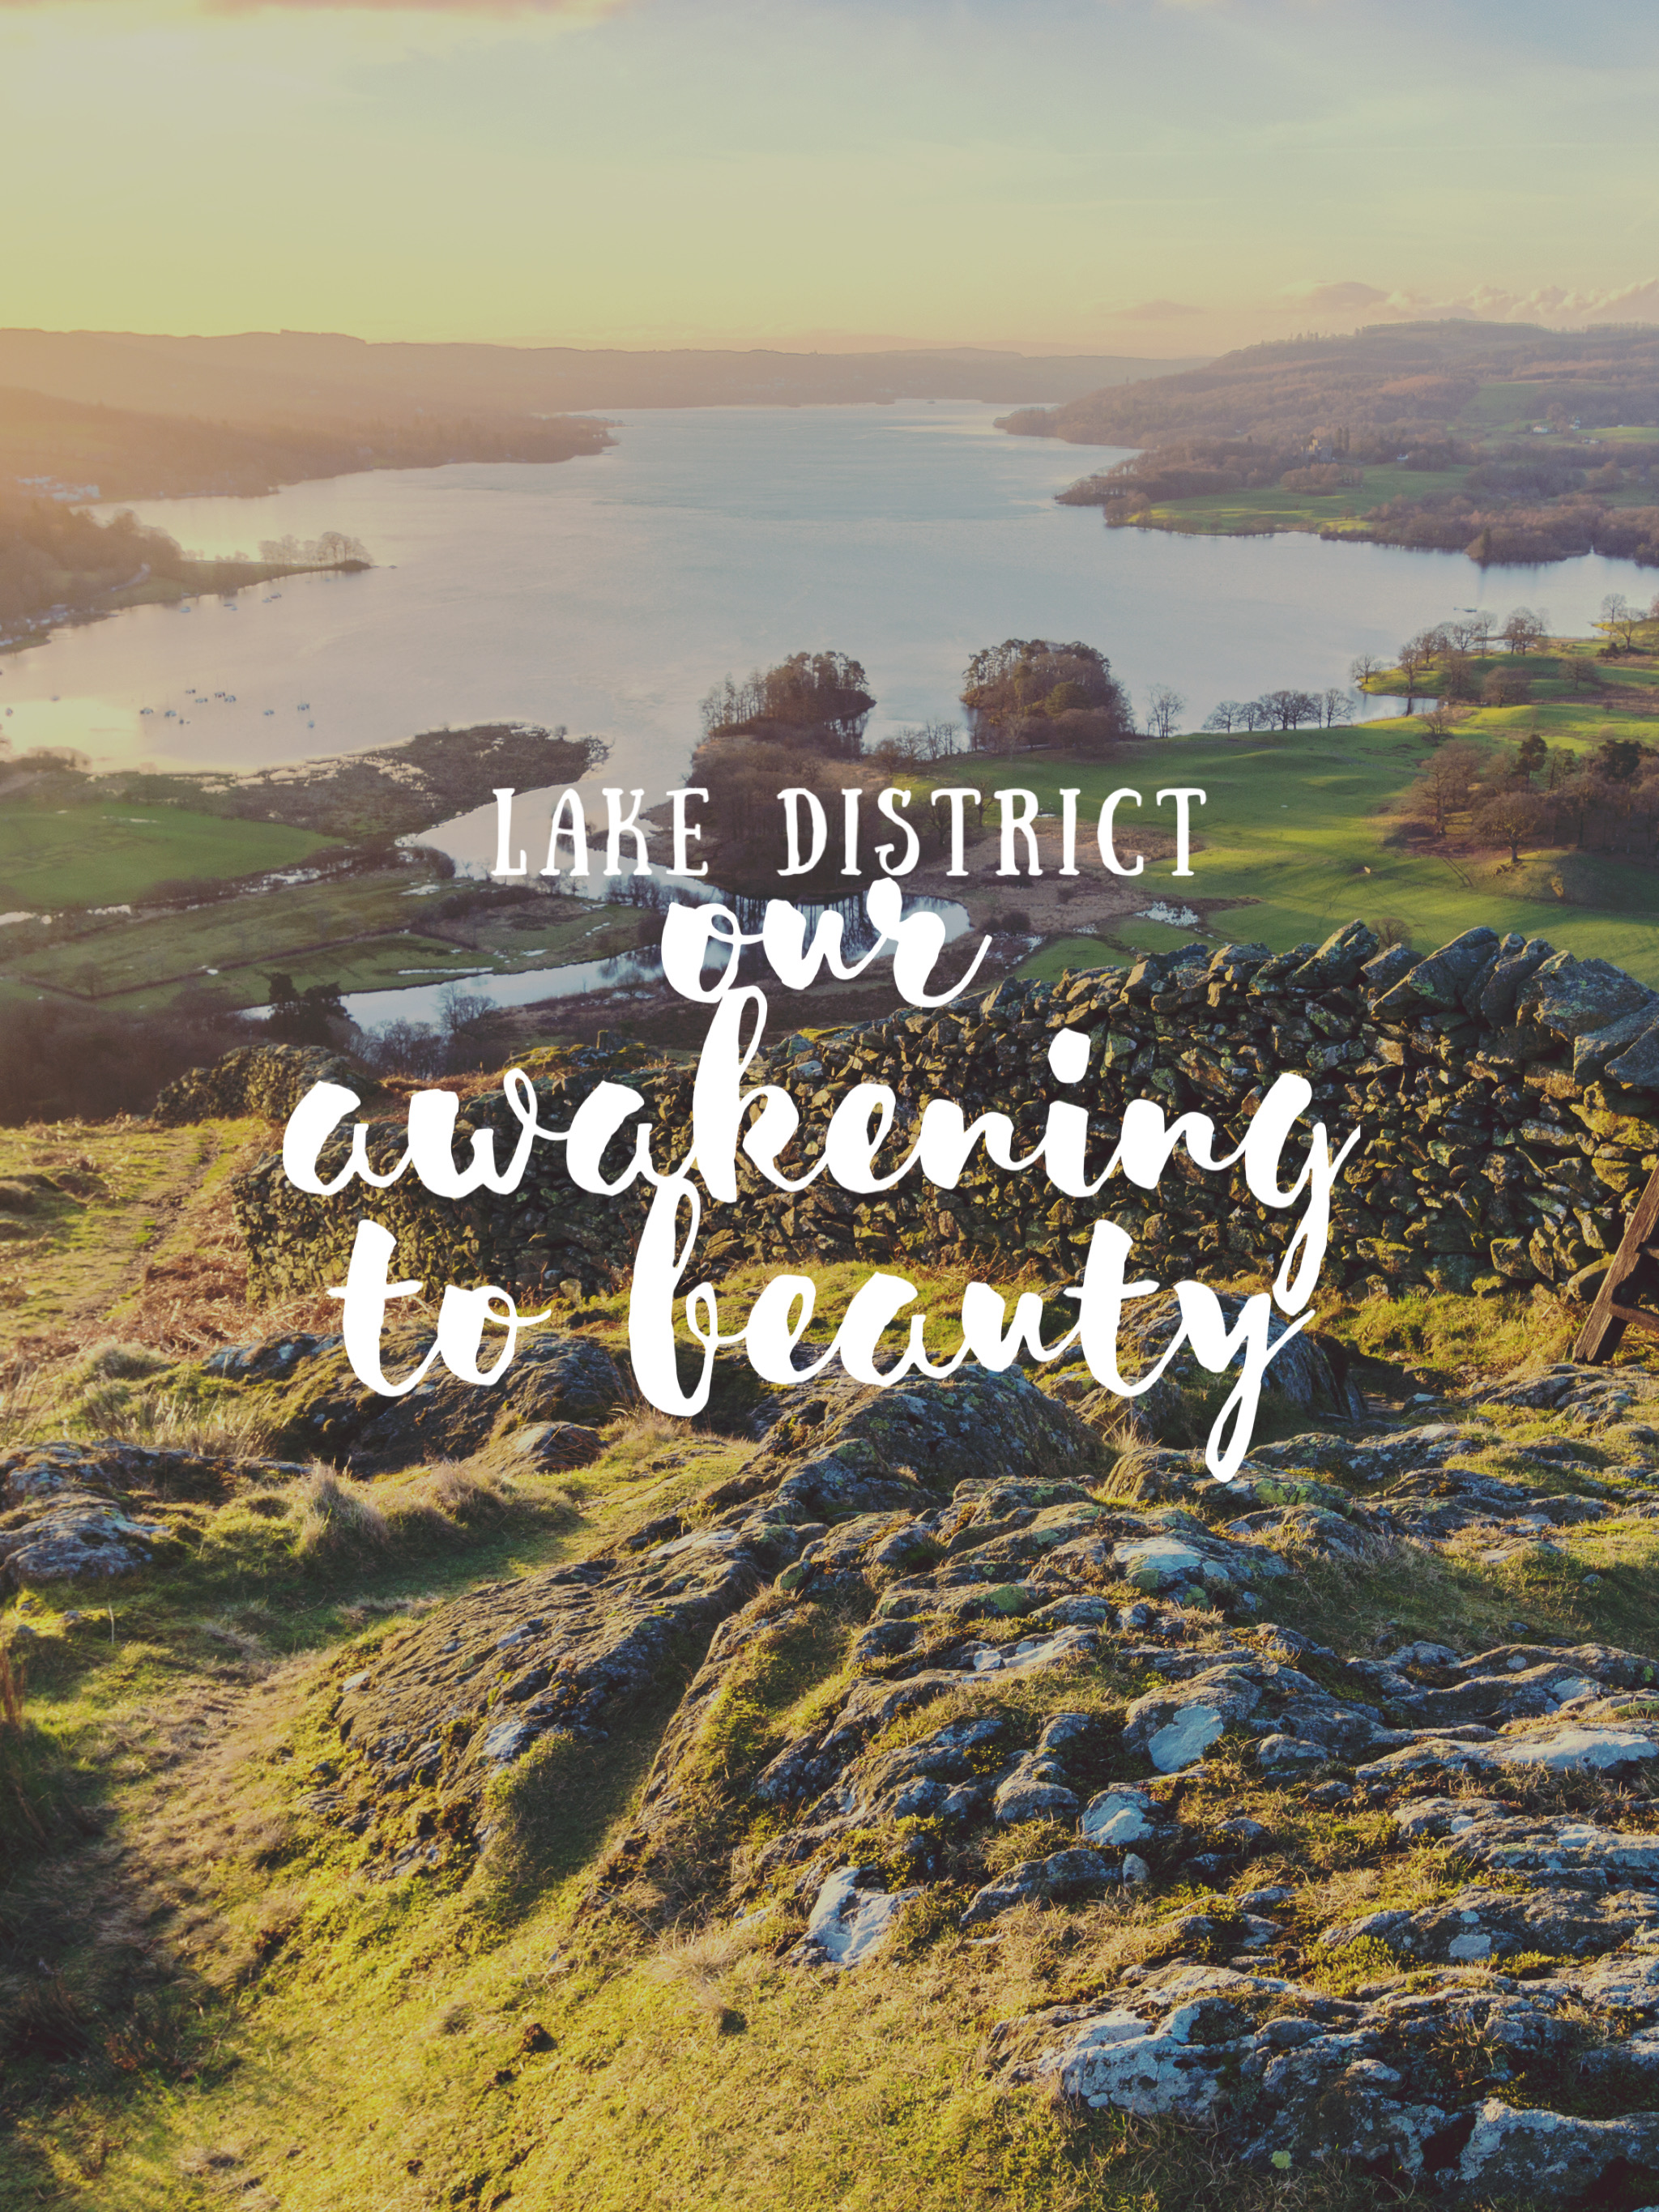 Our Awakening to Beauty